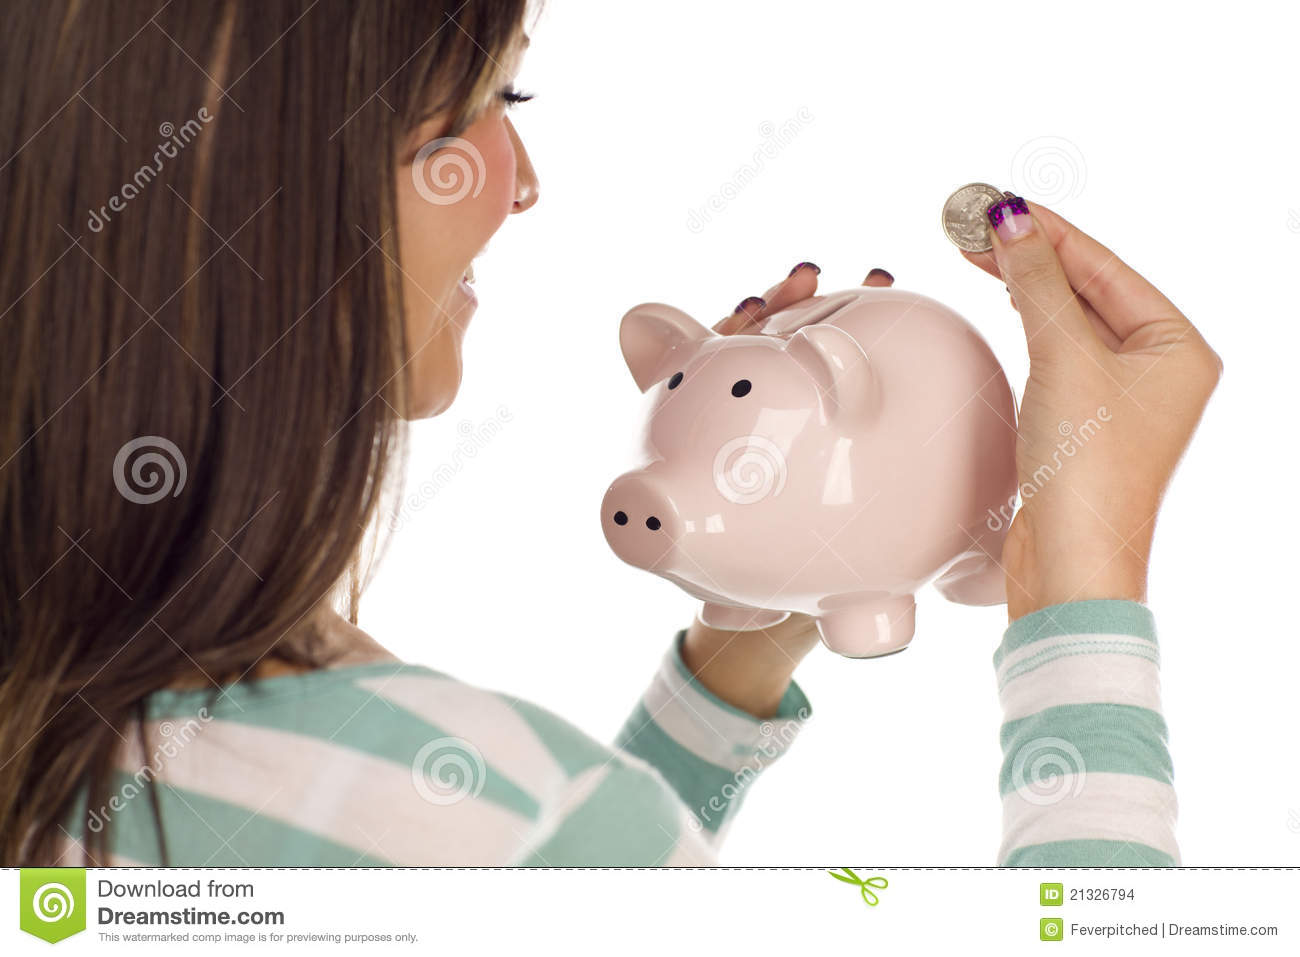 Piggy Bank Adult Ethnic Female Putting Coin Into Piggy Bank Stock Images